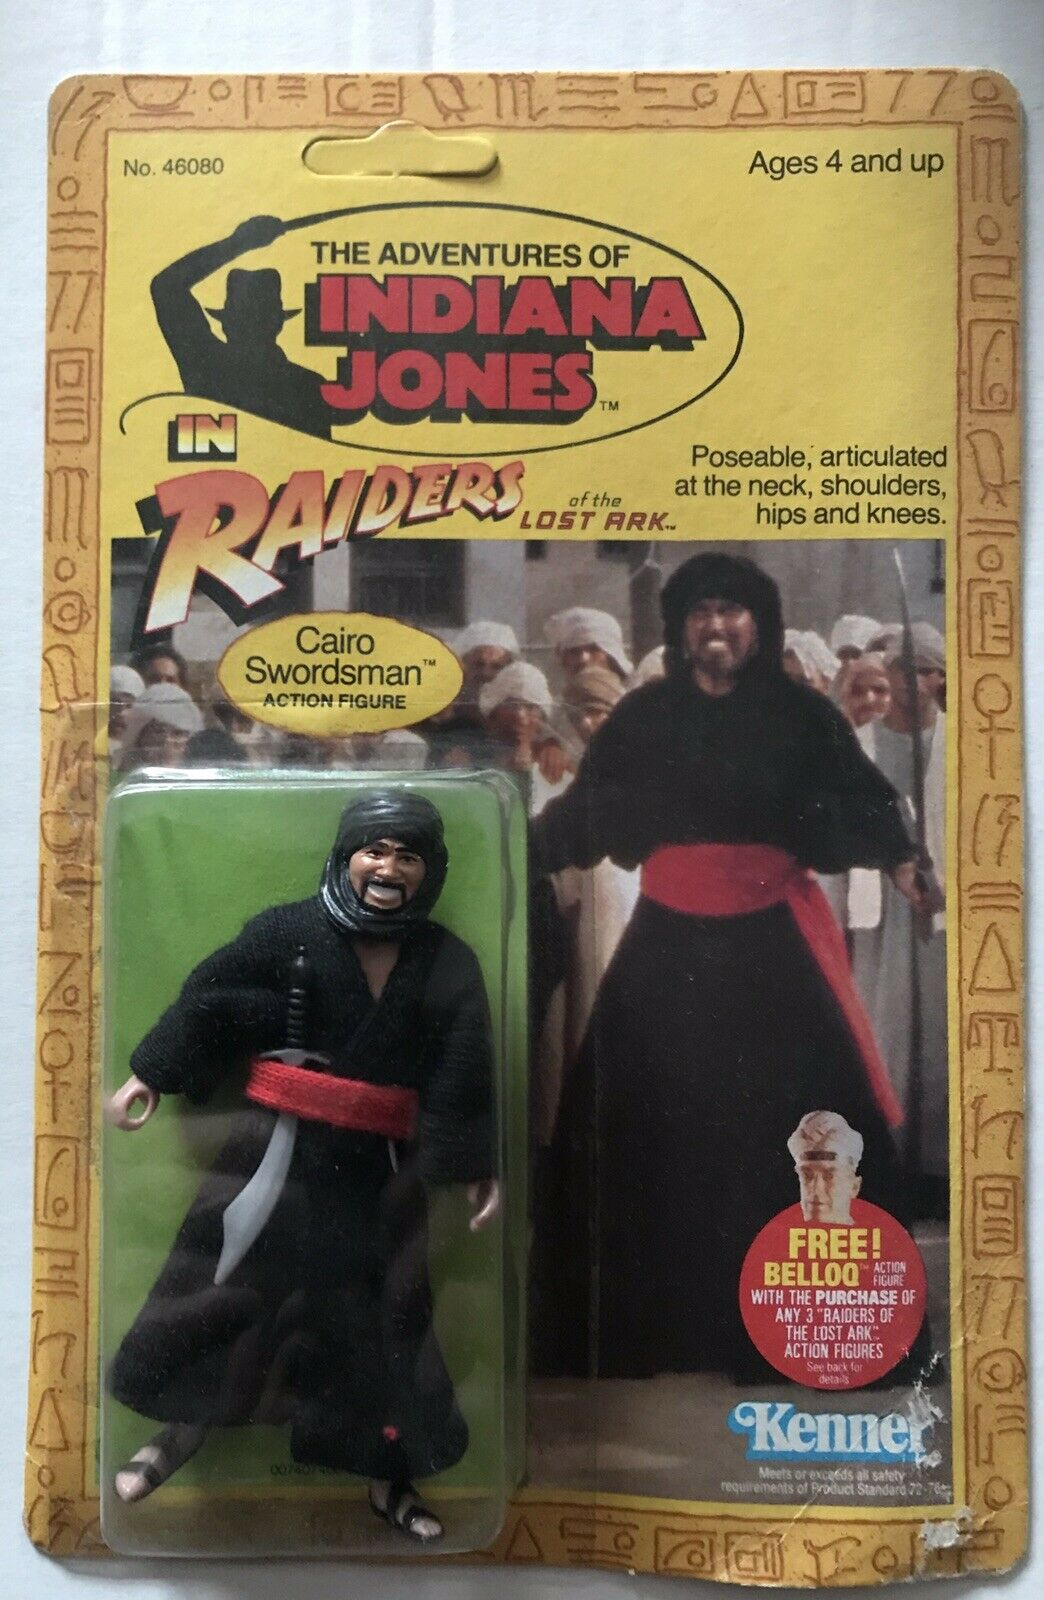 Indiana Jones Action Figure of CAIRO SWORDSMAN with Sword, Dagger 3.75  Tall